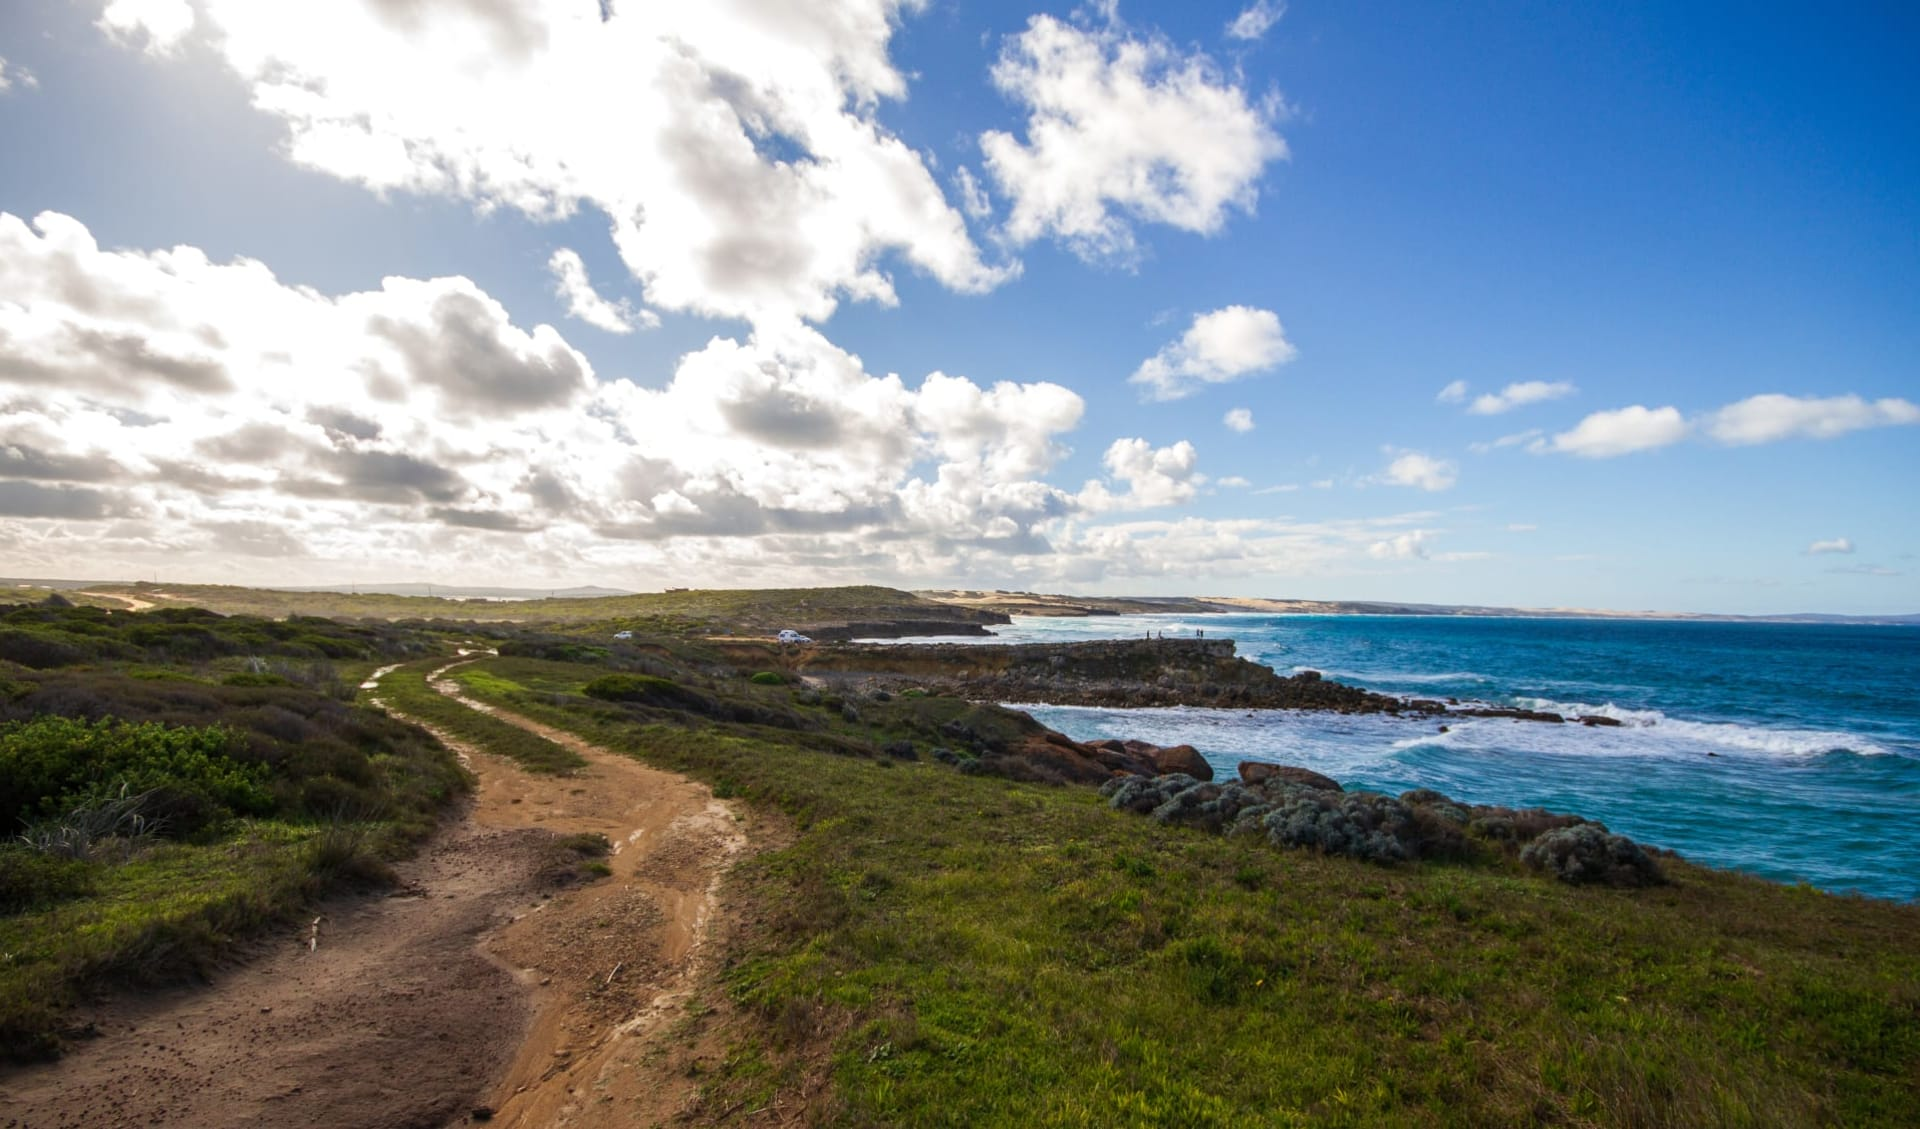 Ocean to Outback Odyssey ab Port Lincoln: Küstenlinie des Nationalparks Port Lincoln